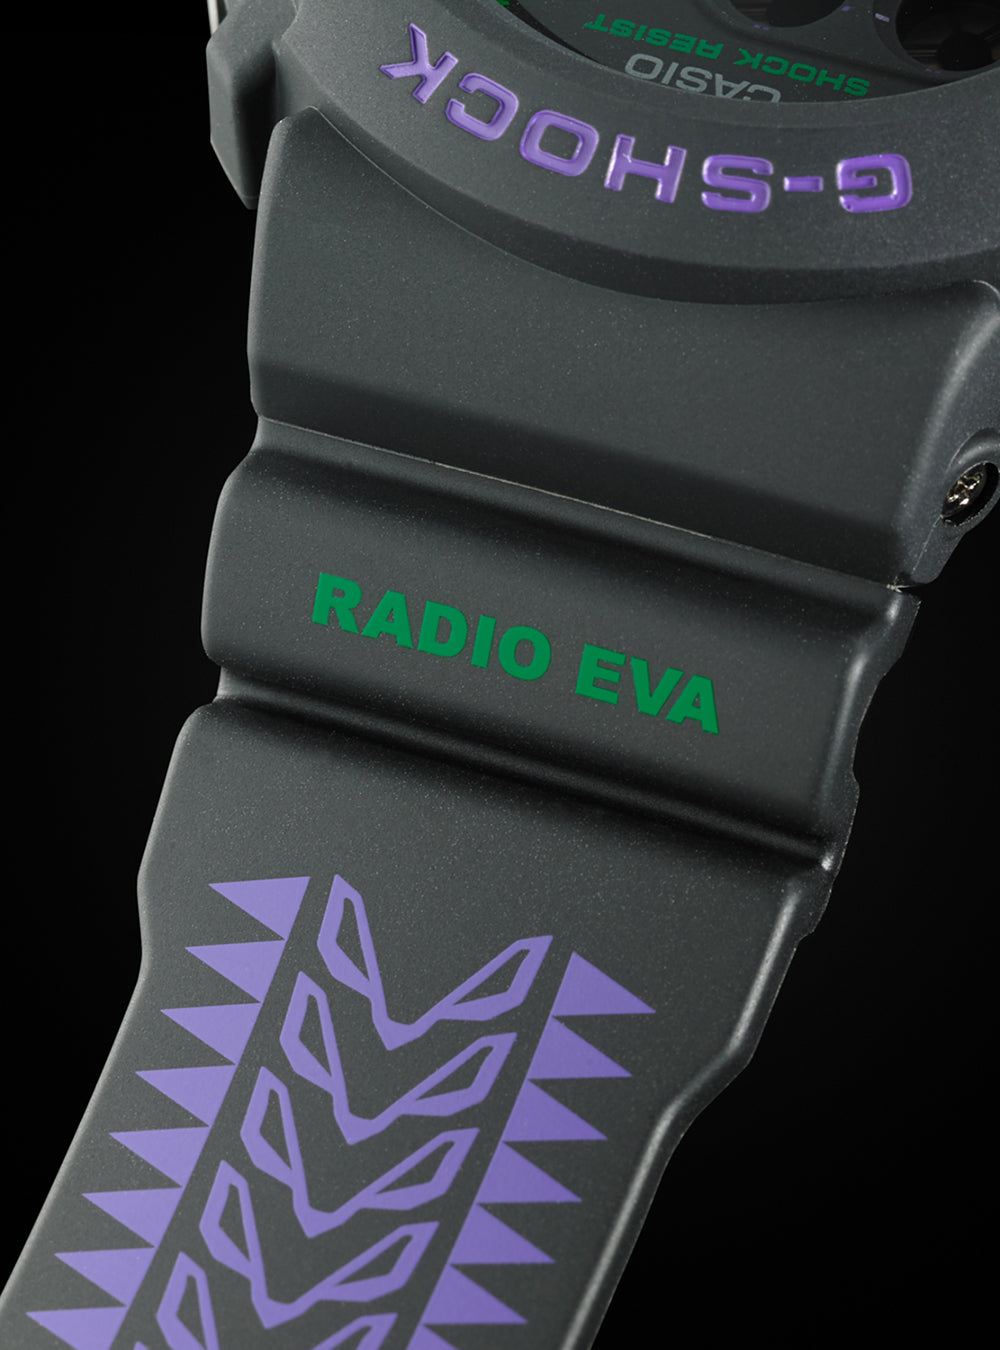 EVANGELION × G-SHOCK × RADIO EVA DW-6900 feat.RADIO EVA LIMITED EDITION